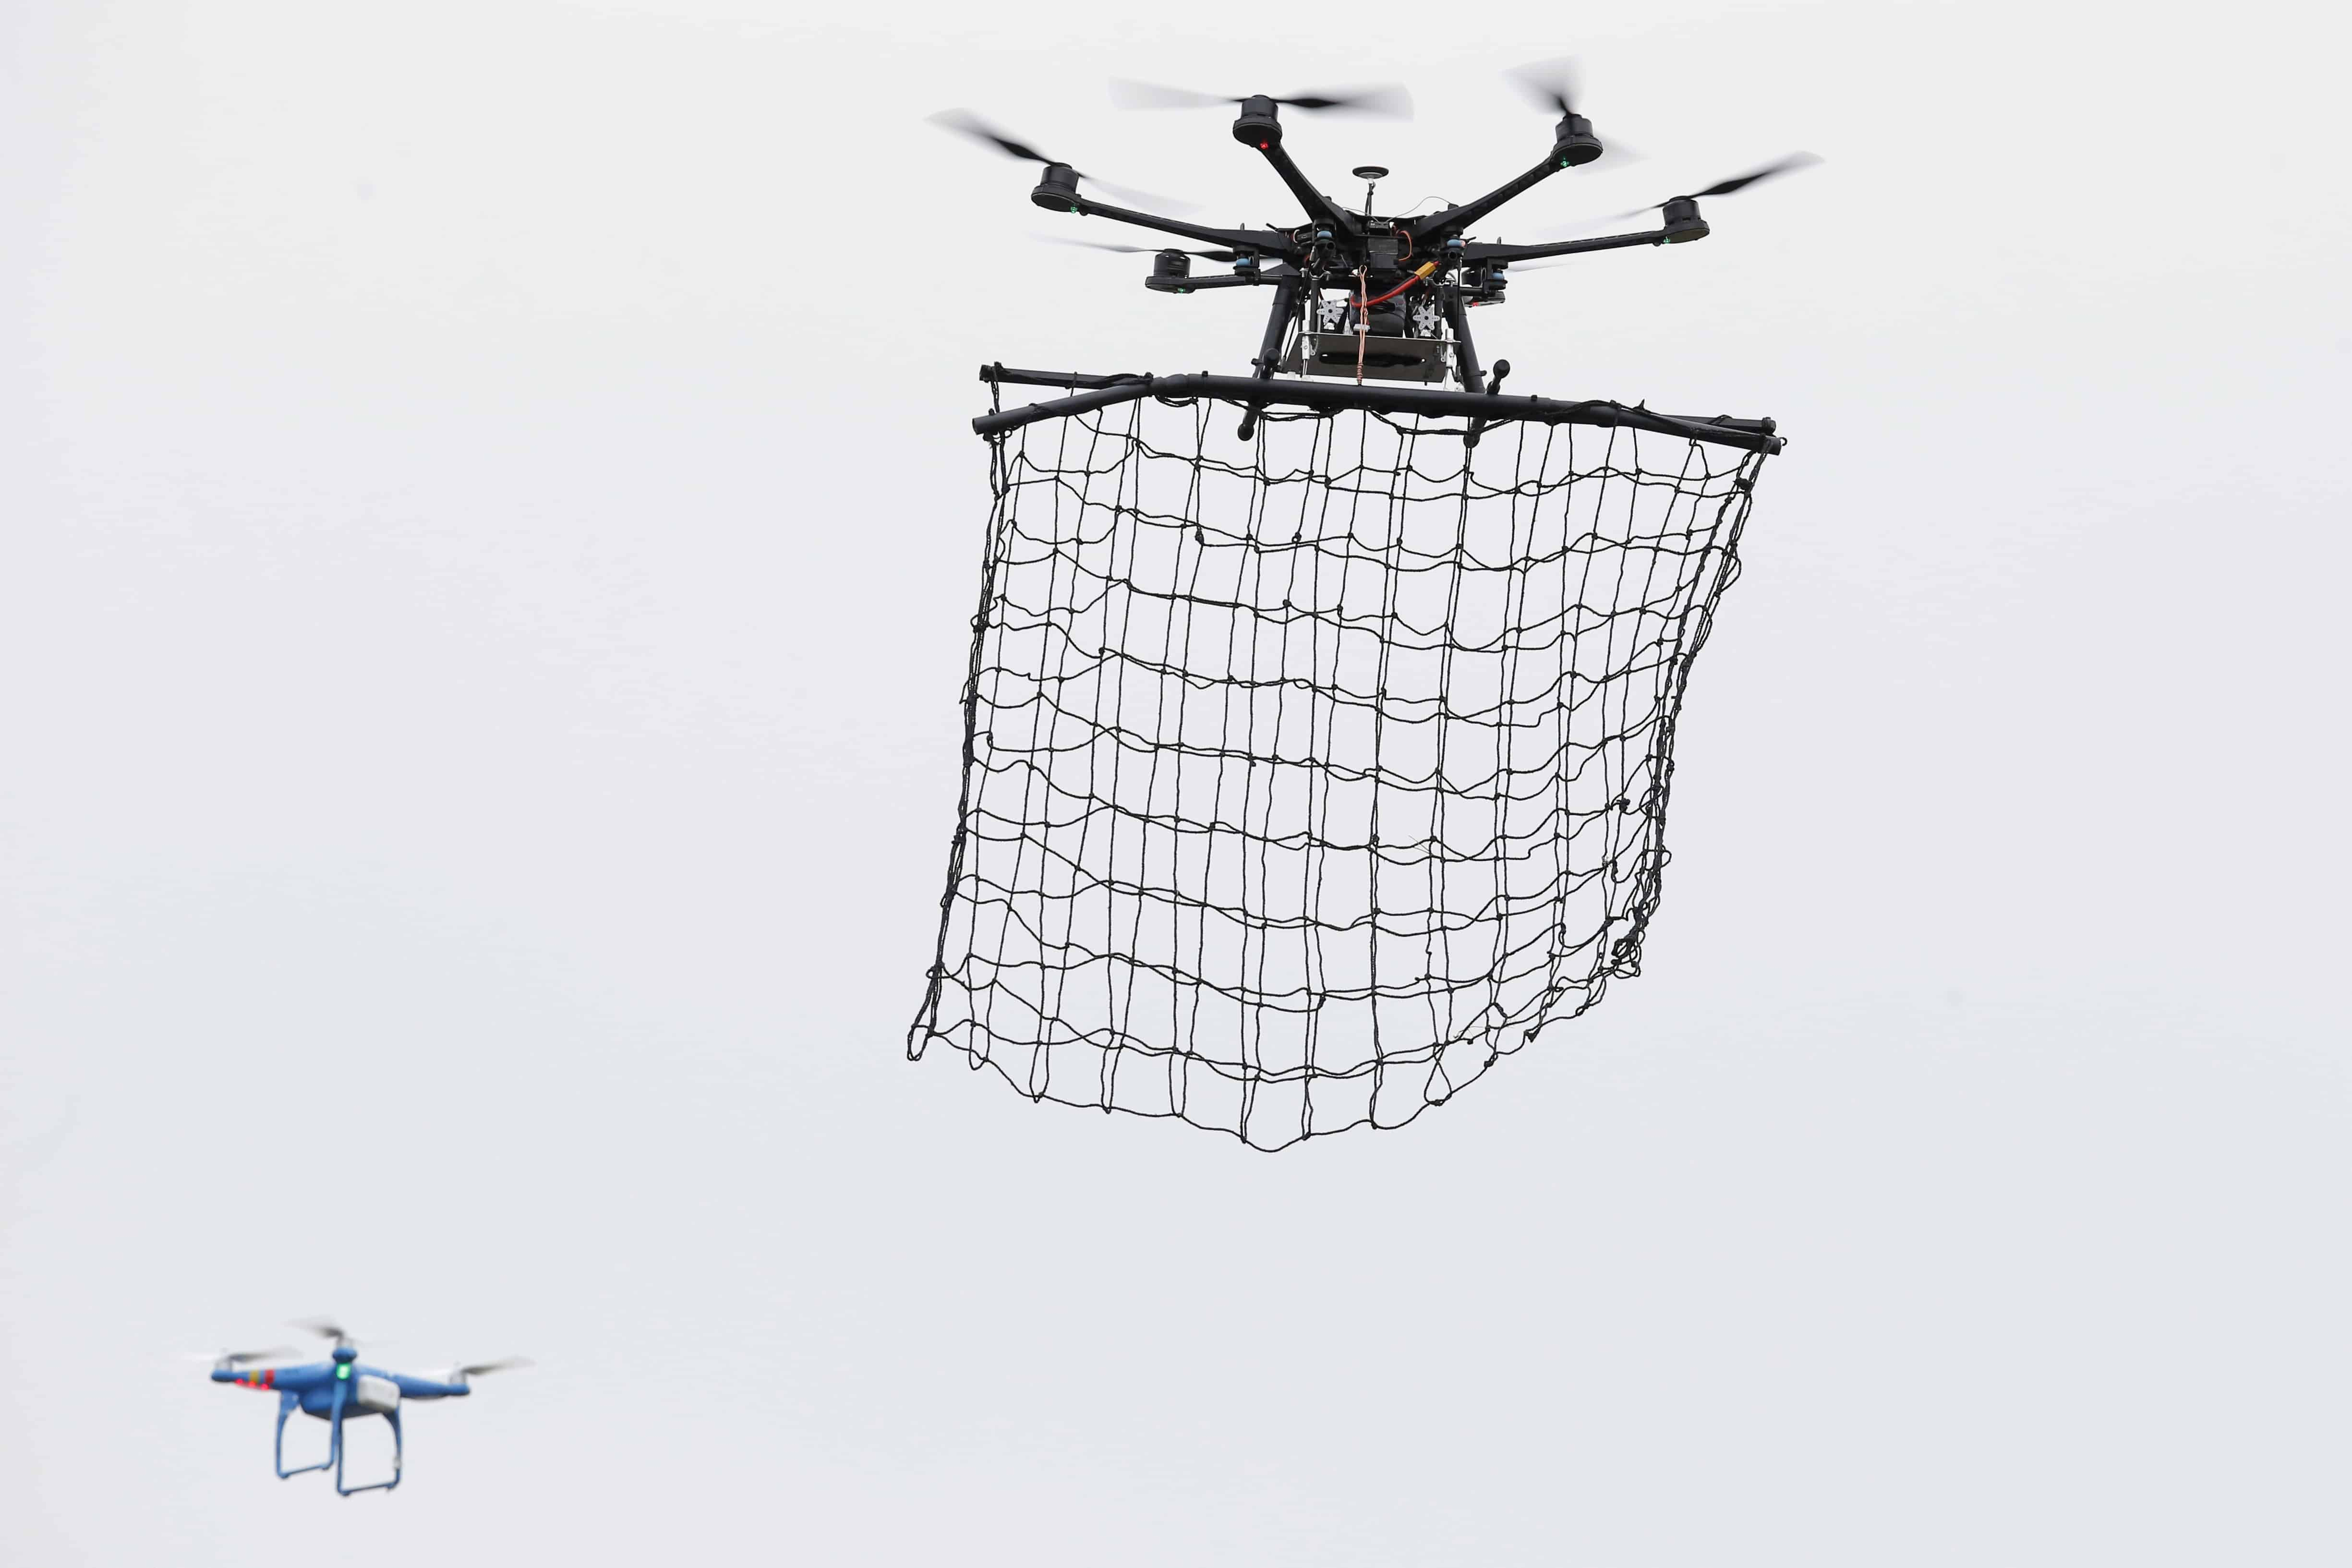 drone mitigation solutions capturing by net